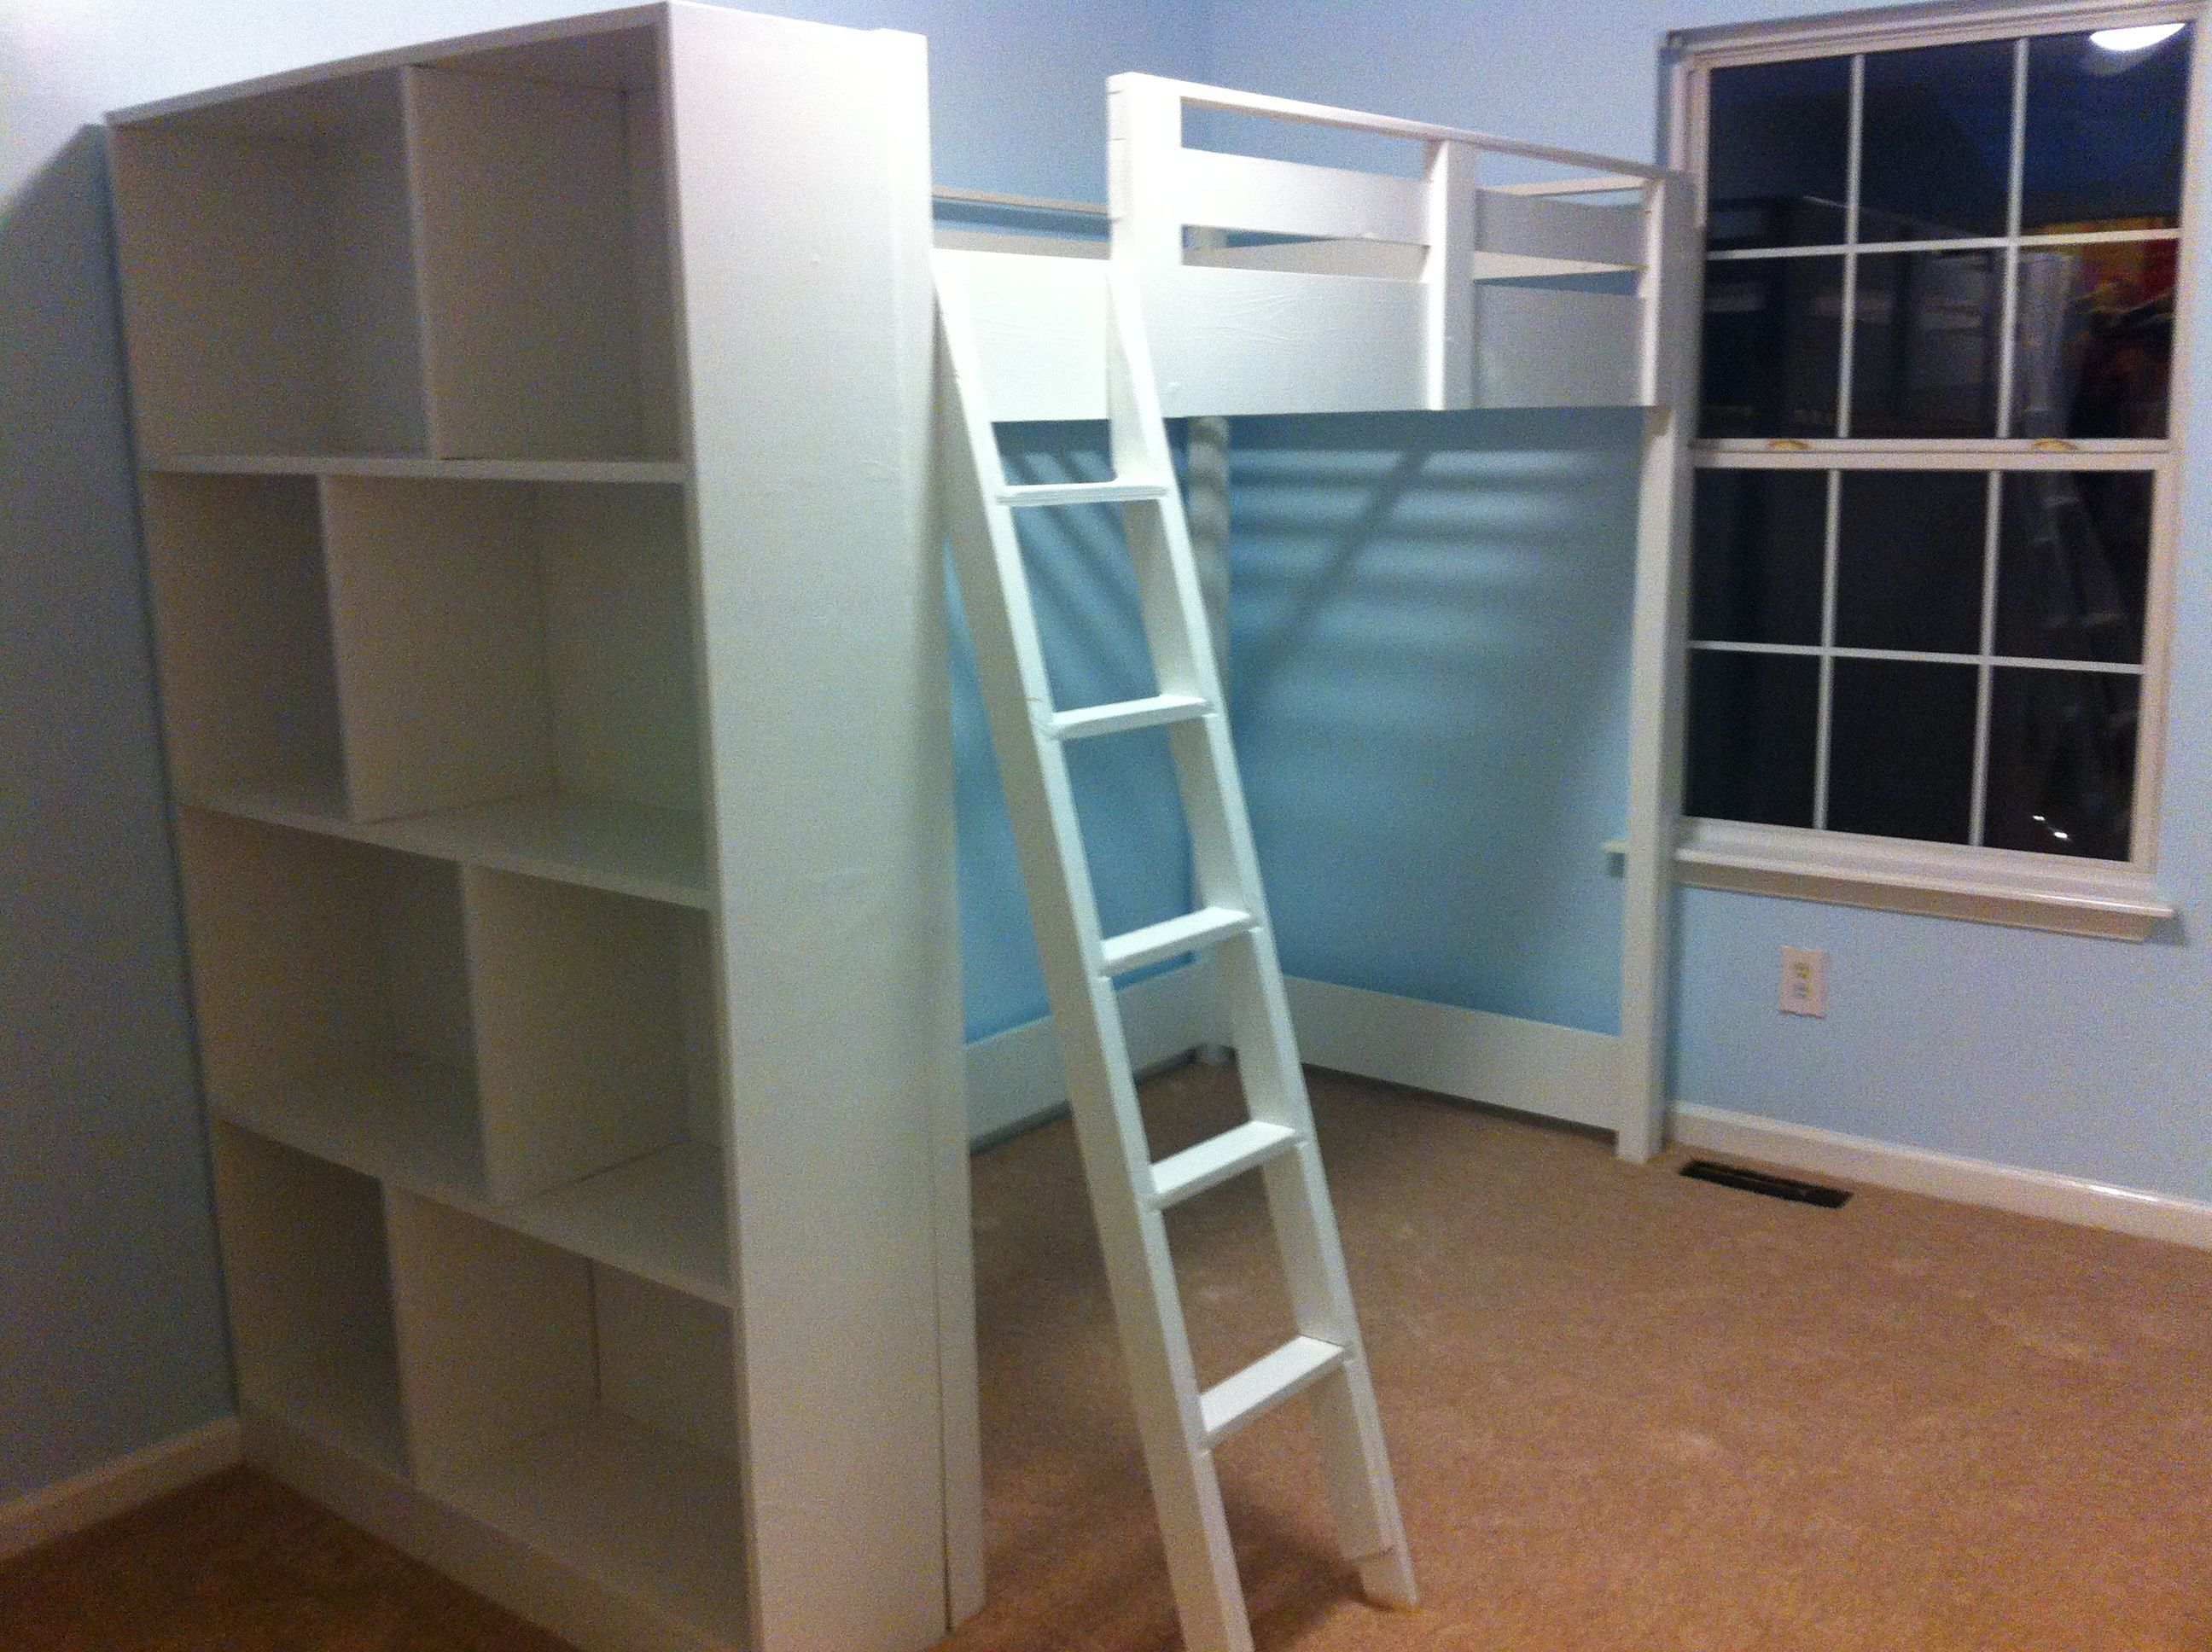 Plywood loft bed plans  The loft bed plans found at Anawhite and book shelf we